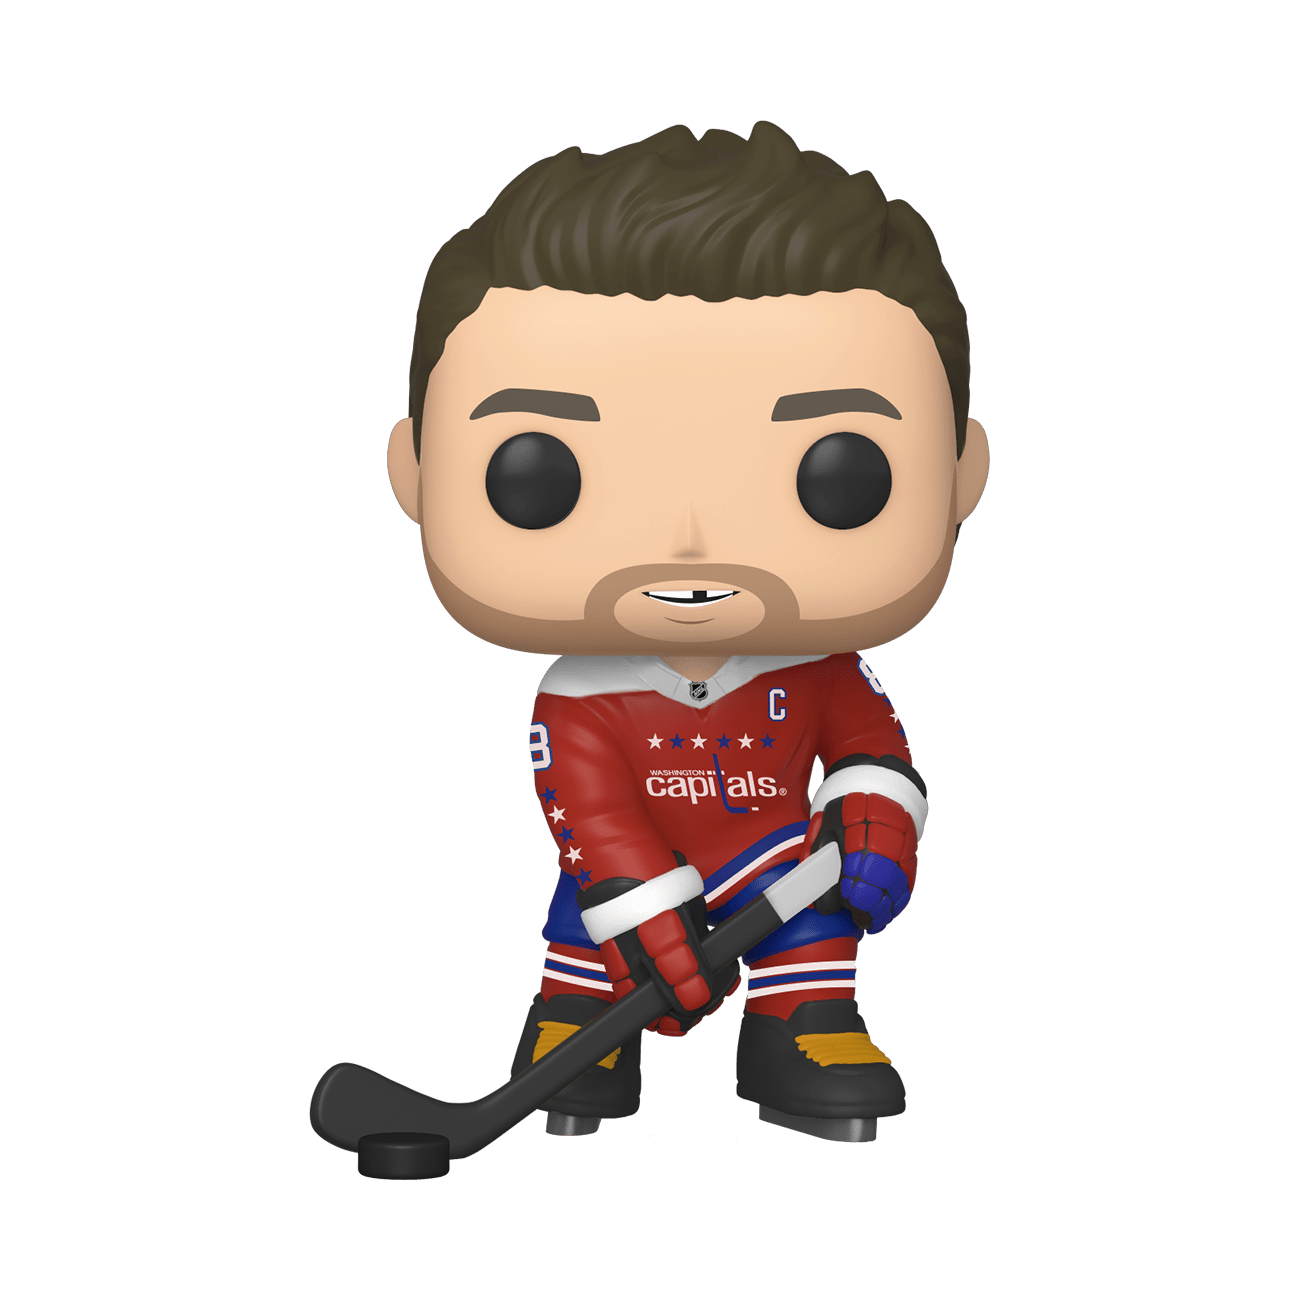 44492_NHL_Alex_Capitals_POP_GLAM-WEB.png